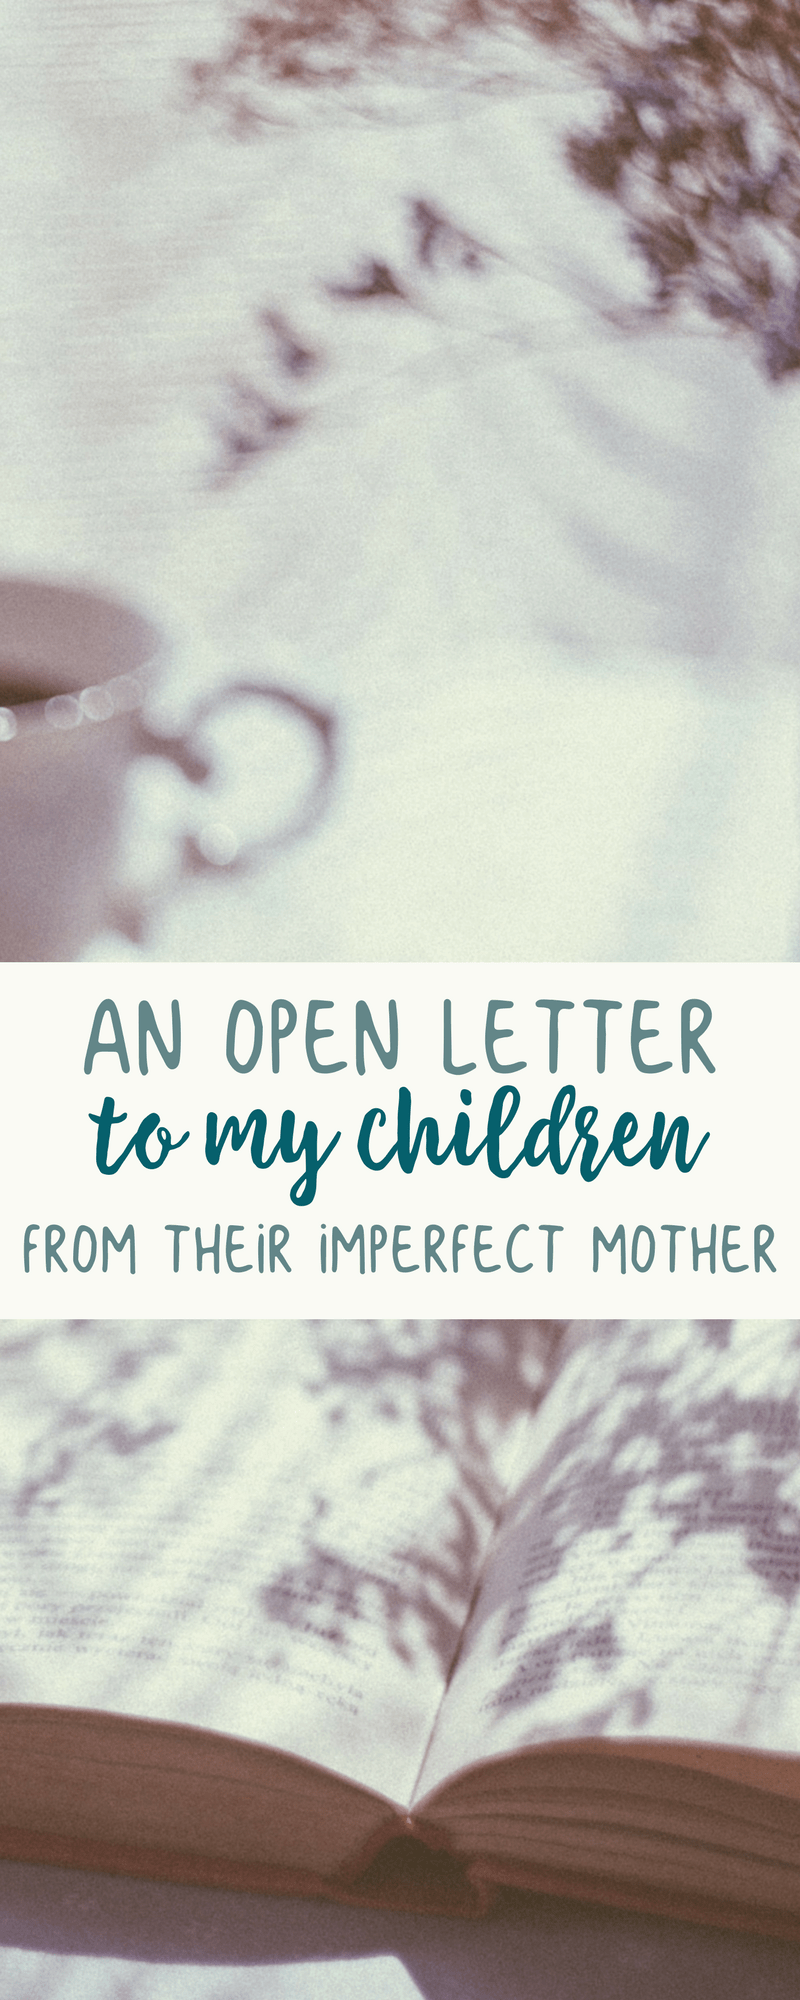 An open letter and apology to my children from their imperfect mother.